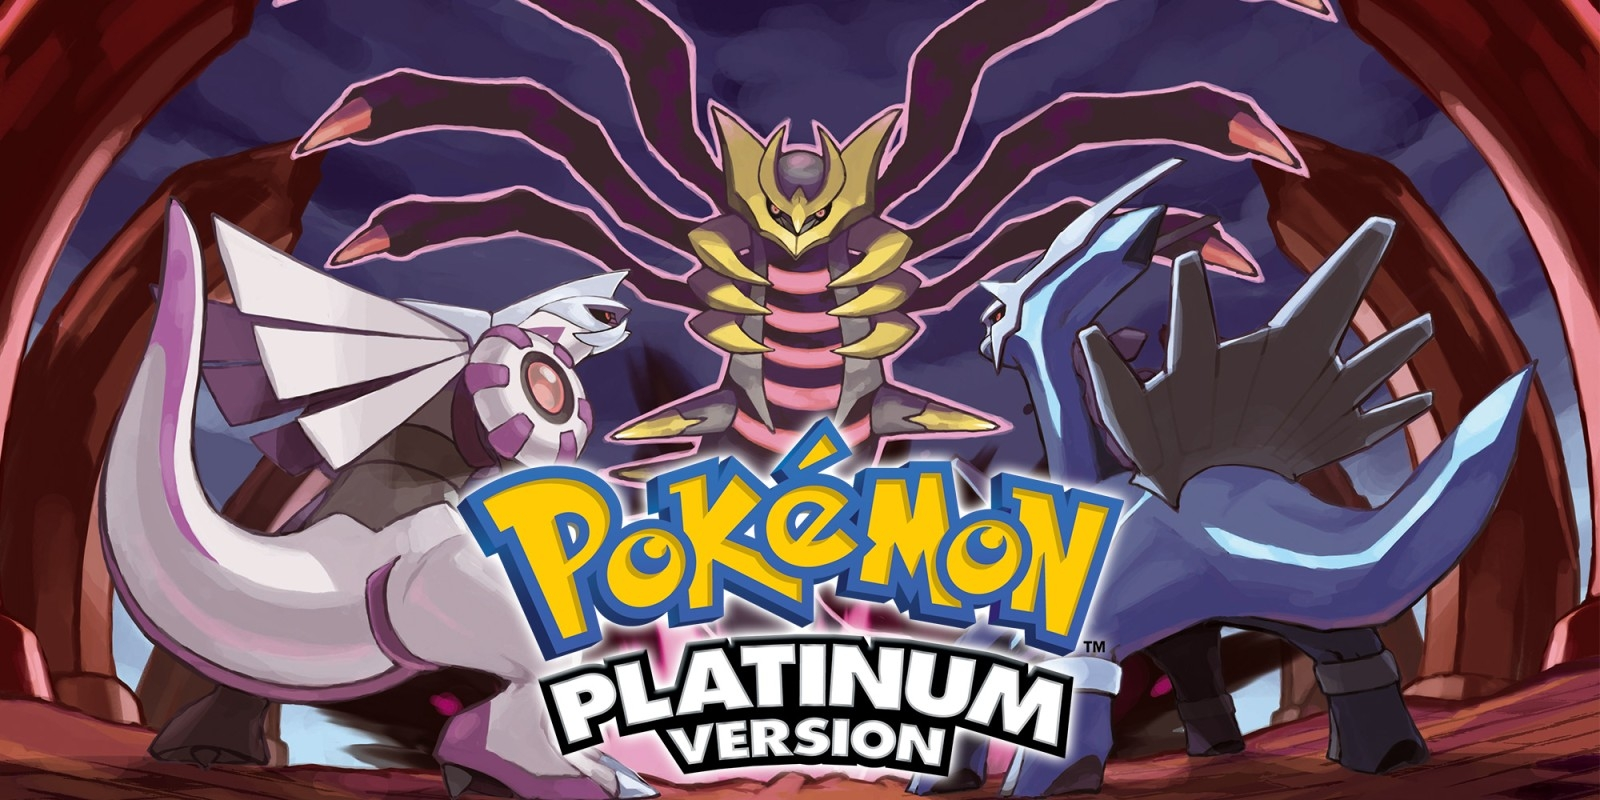 Banner Pokemon Platinum Version